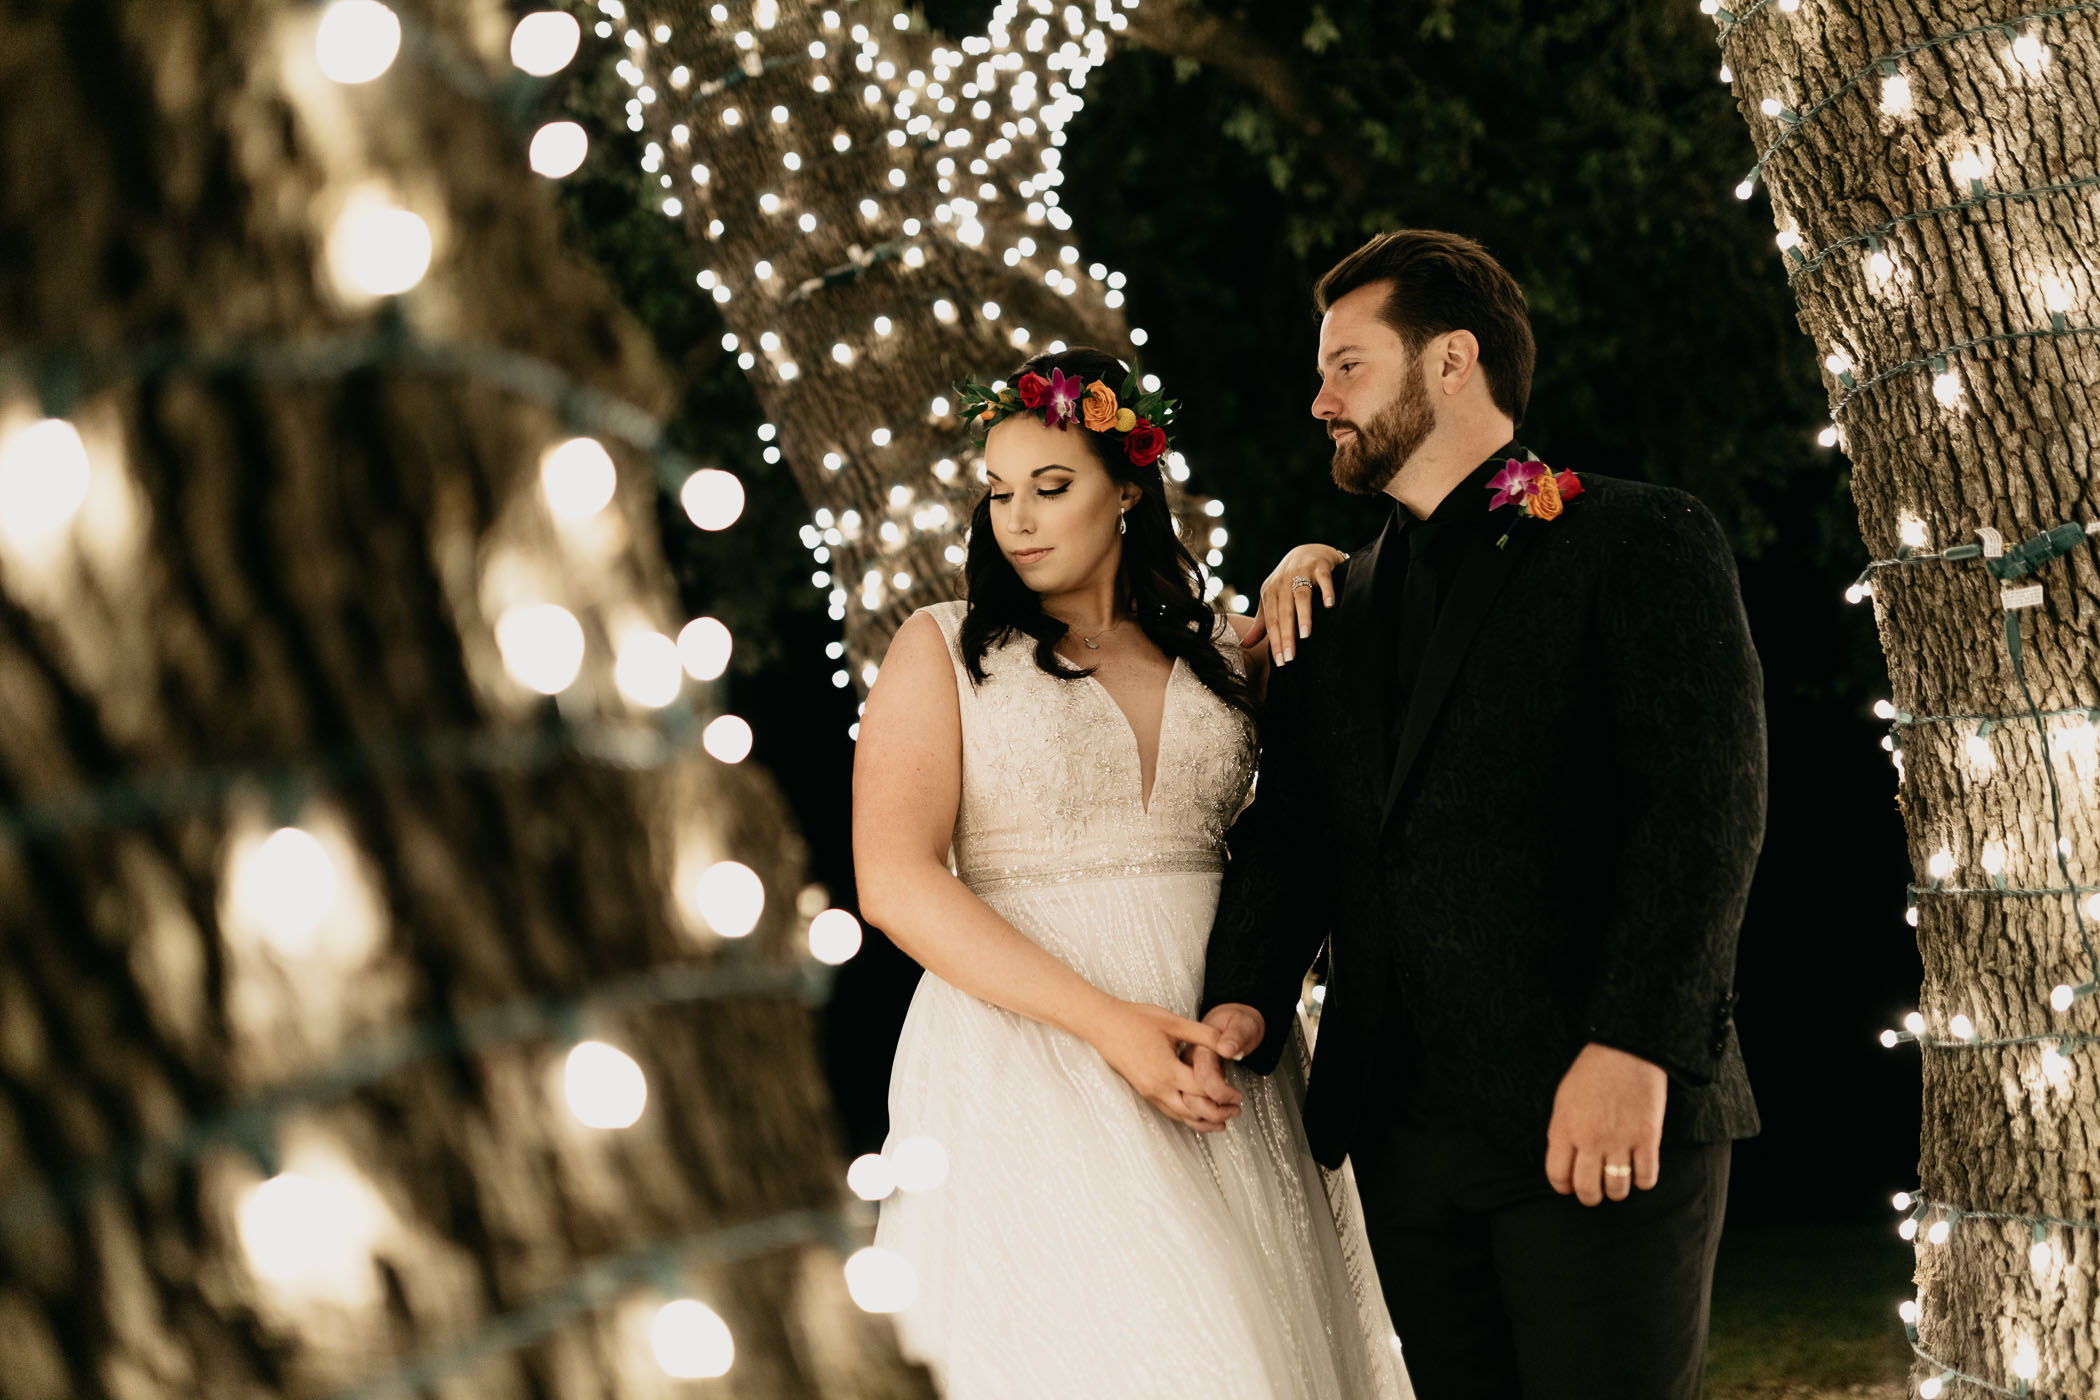 Moody photo of bride and groom standing in a tree of string lights